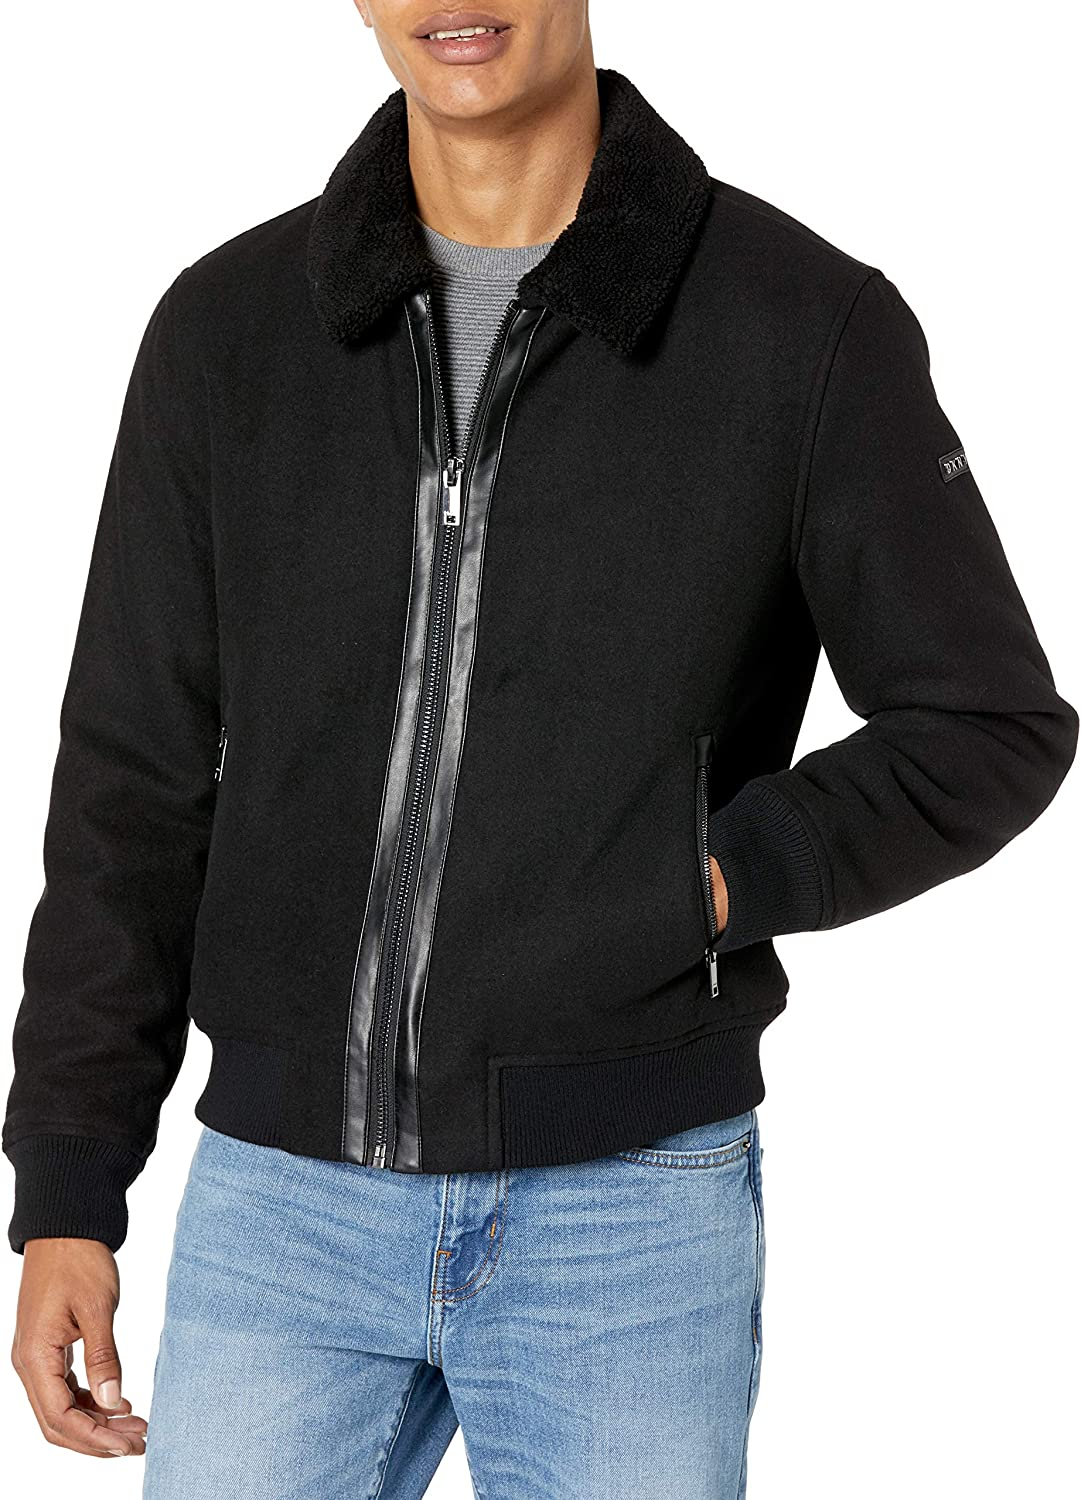 DKNY Men's Wool Blend Bomber Jacket with Sherpa Collar